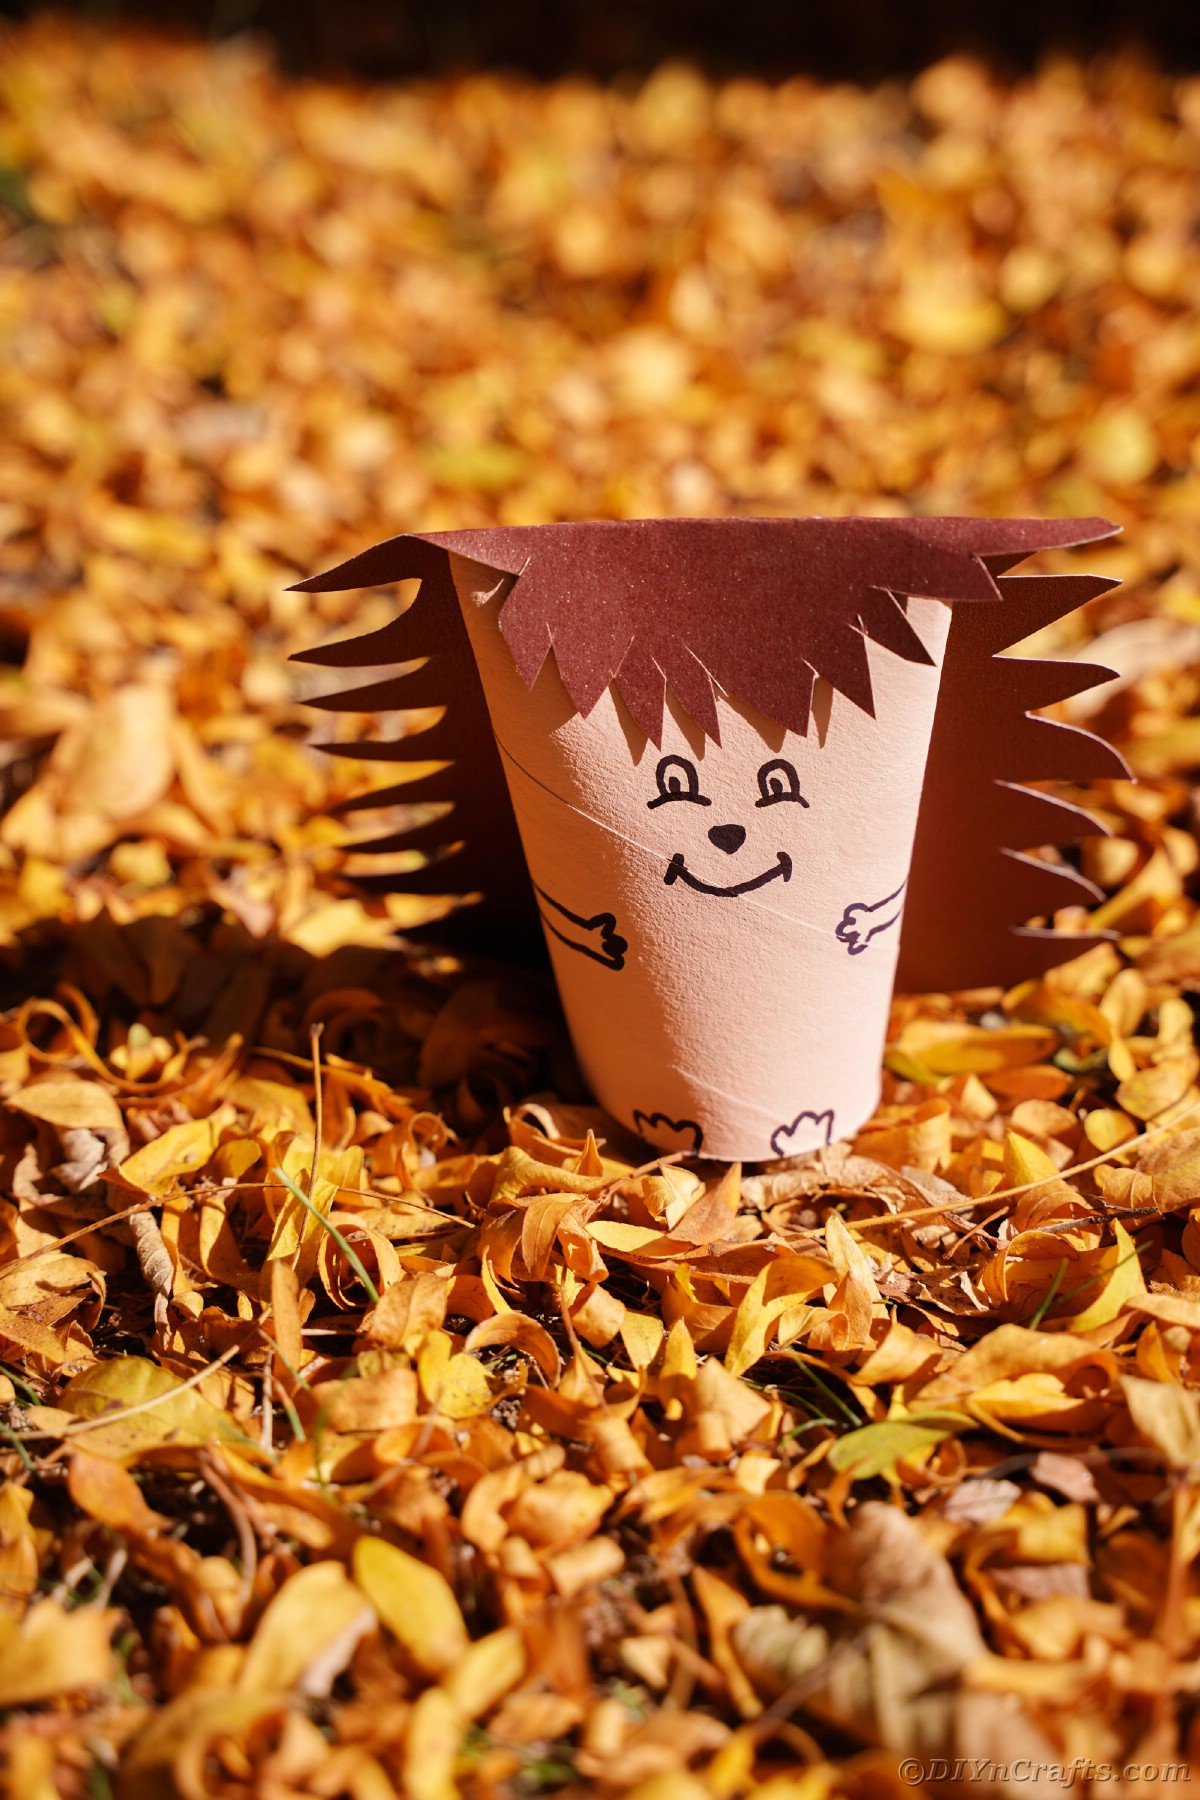 Fallen yellow leaves with paper hedgehog in middle